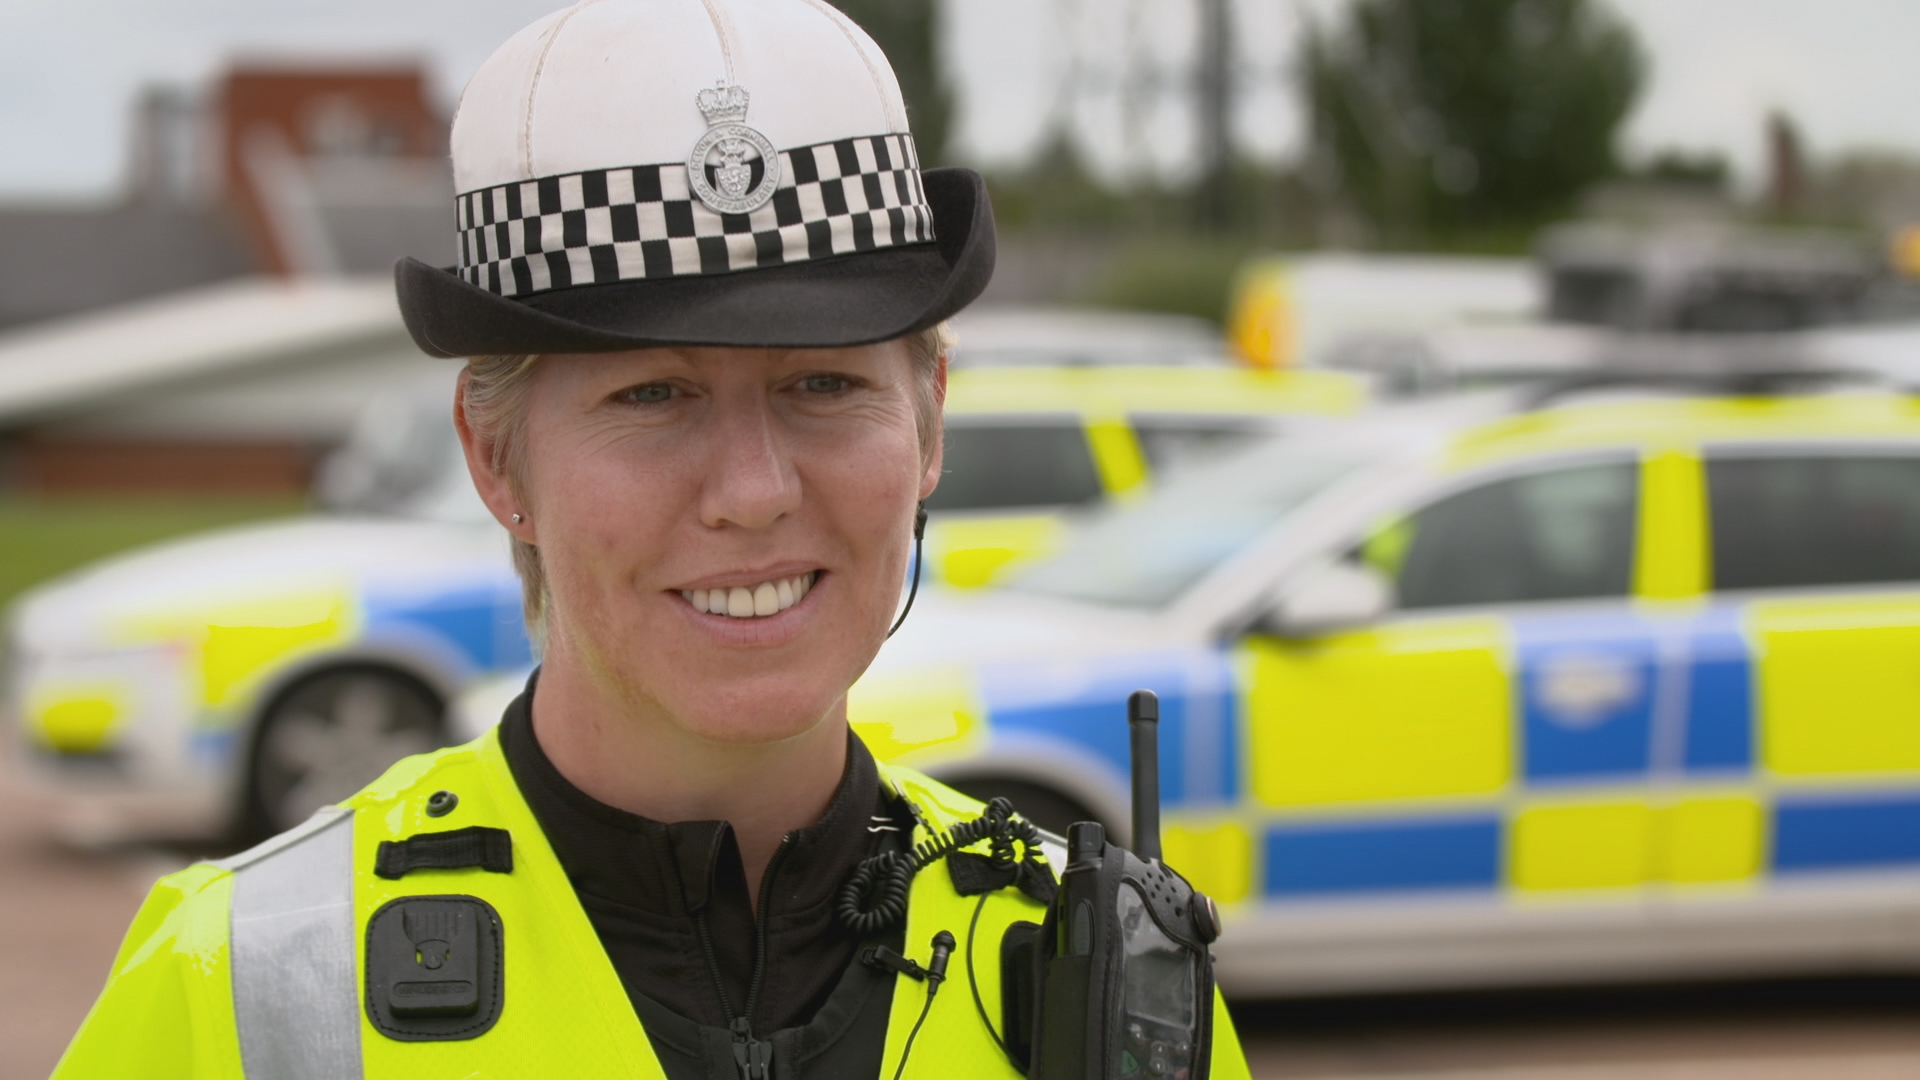 devon and cornwall cops - police woman smiling